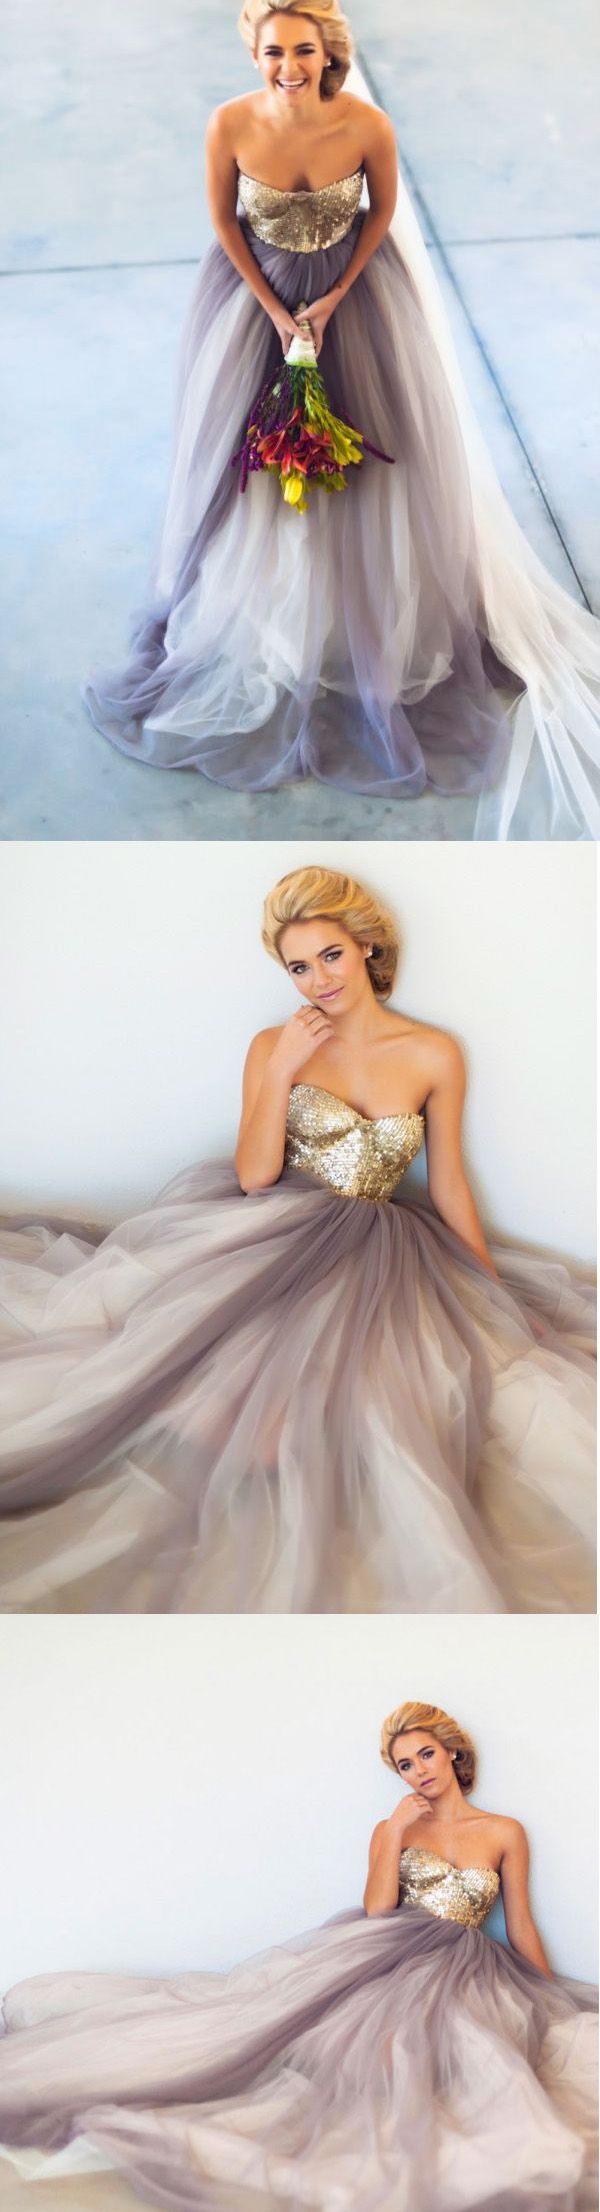 Gray Prom Dresses,Gold Sequin Prom Dress,Sequined Prom Gown,Sequins Prom Gowns,Elegant Evening Dress,Modest Evening Gowns,Tulle Party Gowns,Sequins Prom Dress,Sweetheart Party Dress